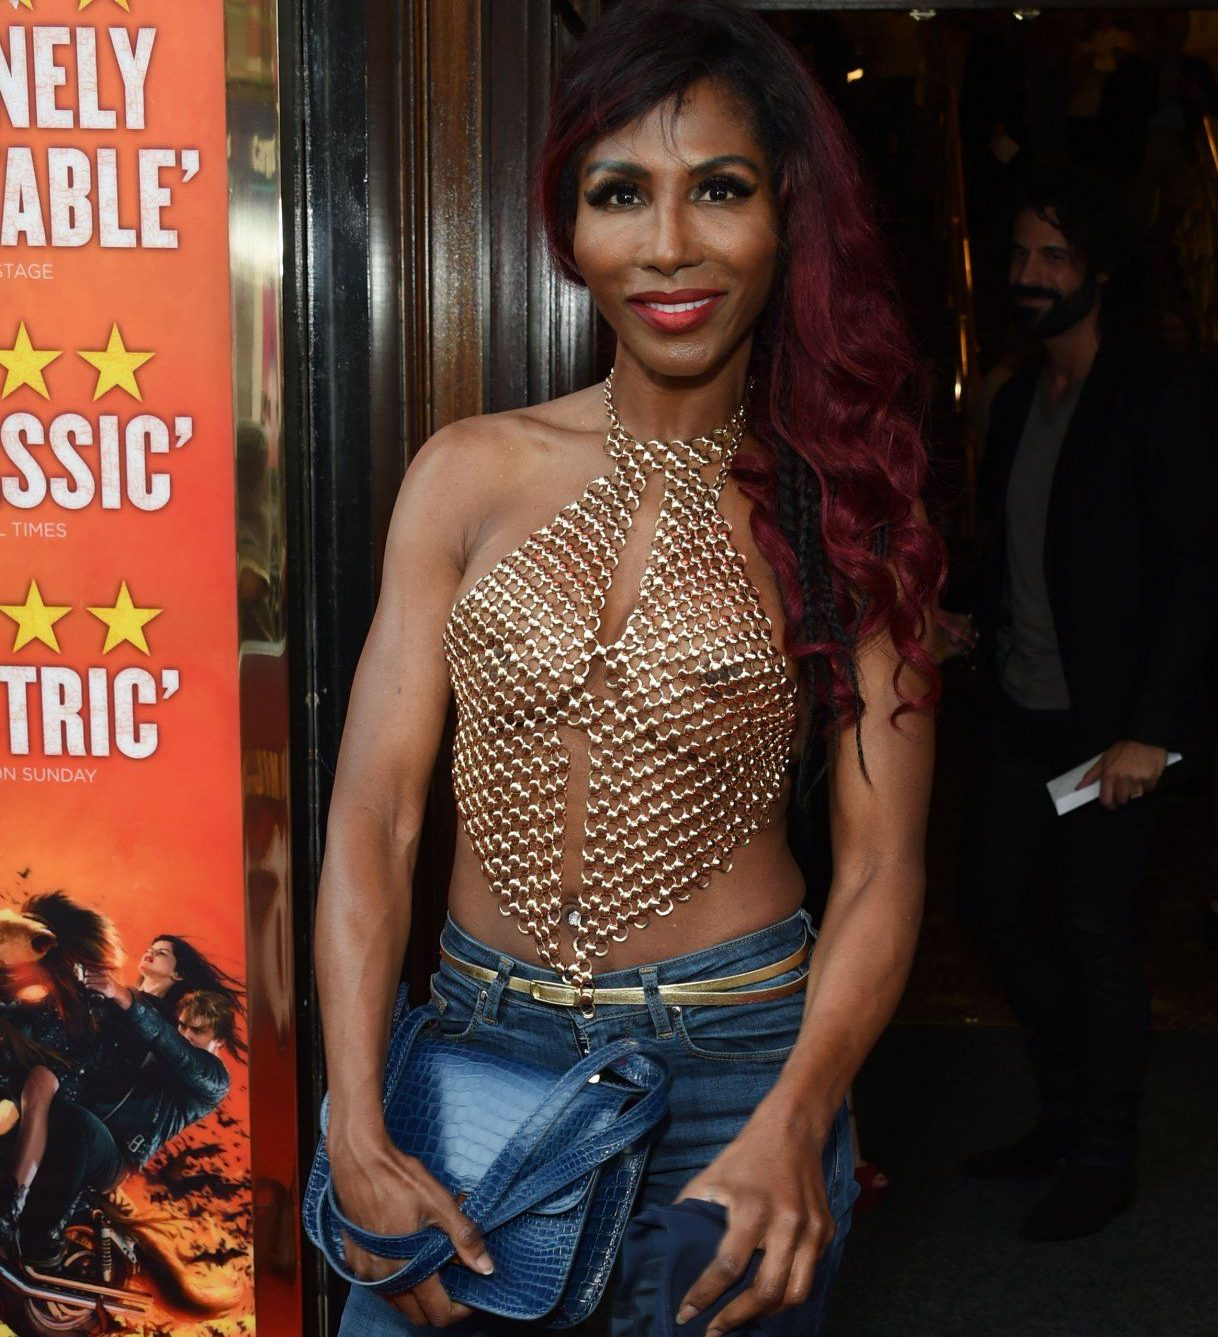 """LONDON, ENGLAND - APRIL 19: Sinitta arrives for the Gala Night performance of """"Bat Out Of Hell The Musical"""" at the Dominion Theatre on April 19, 2018 in London, England. (Photo by David M. Benett/Dave Benett/Getty Images for Bat Out Of Hell The Musical)"""